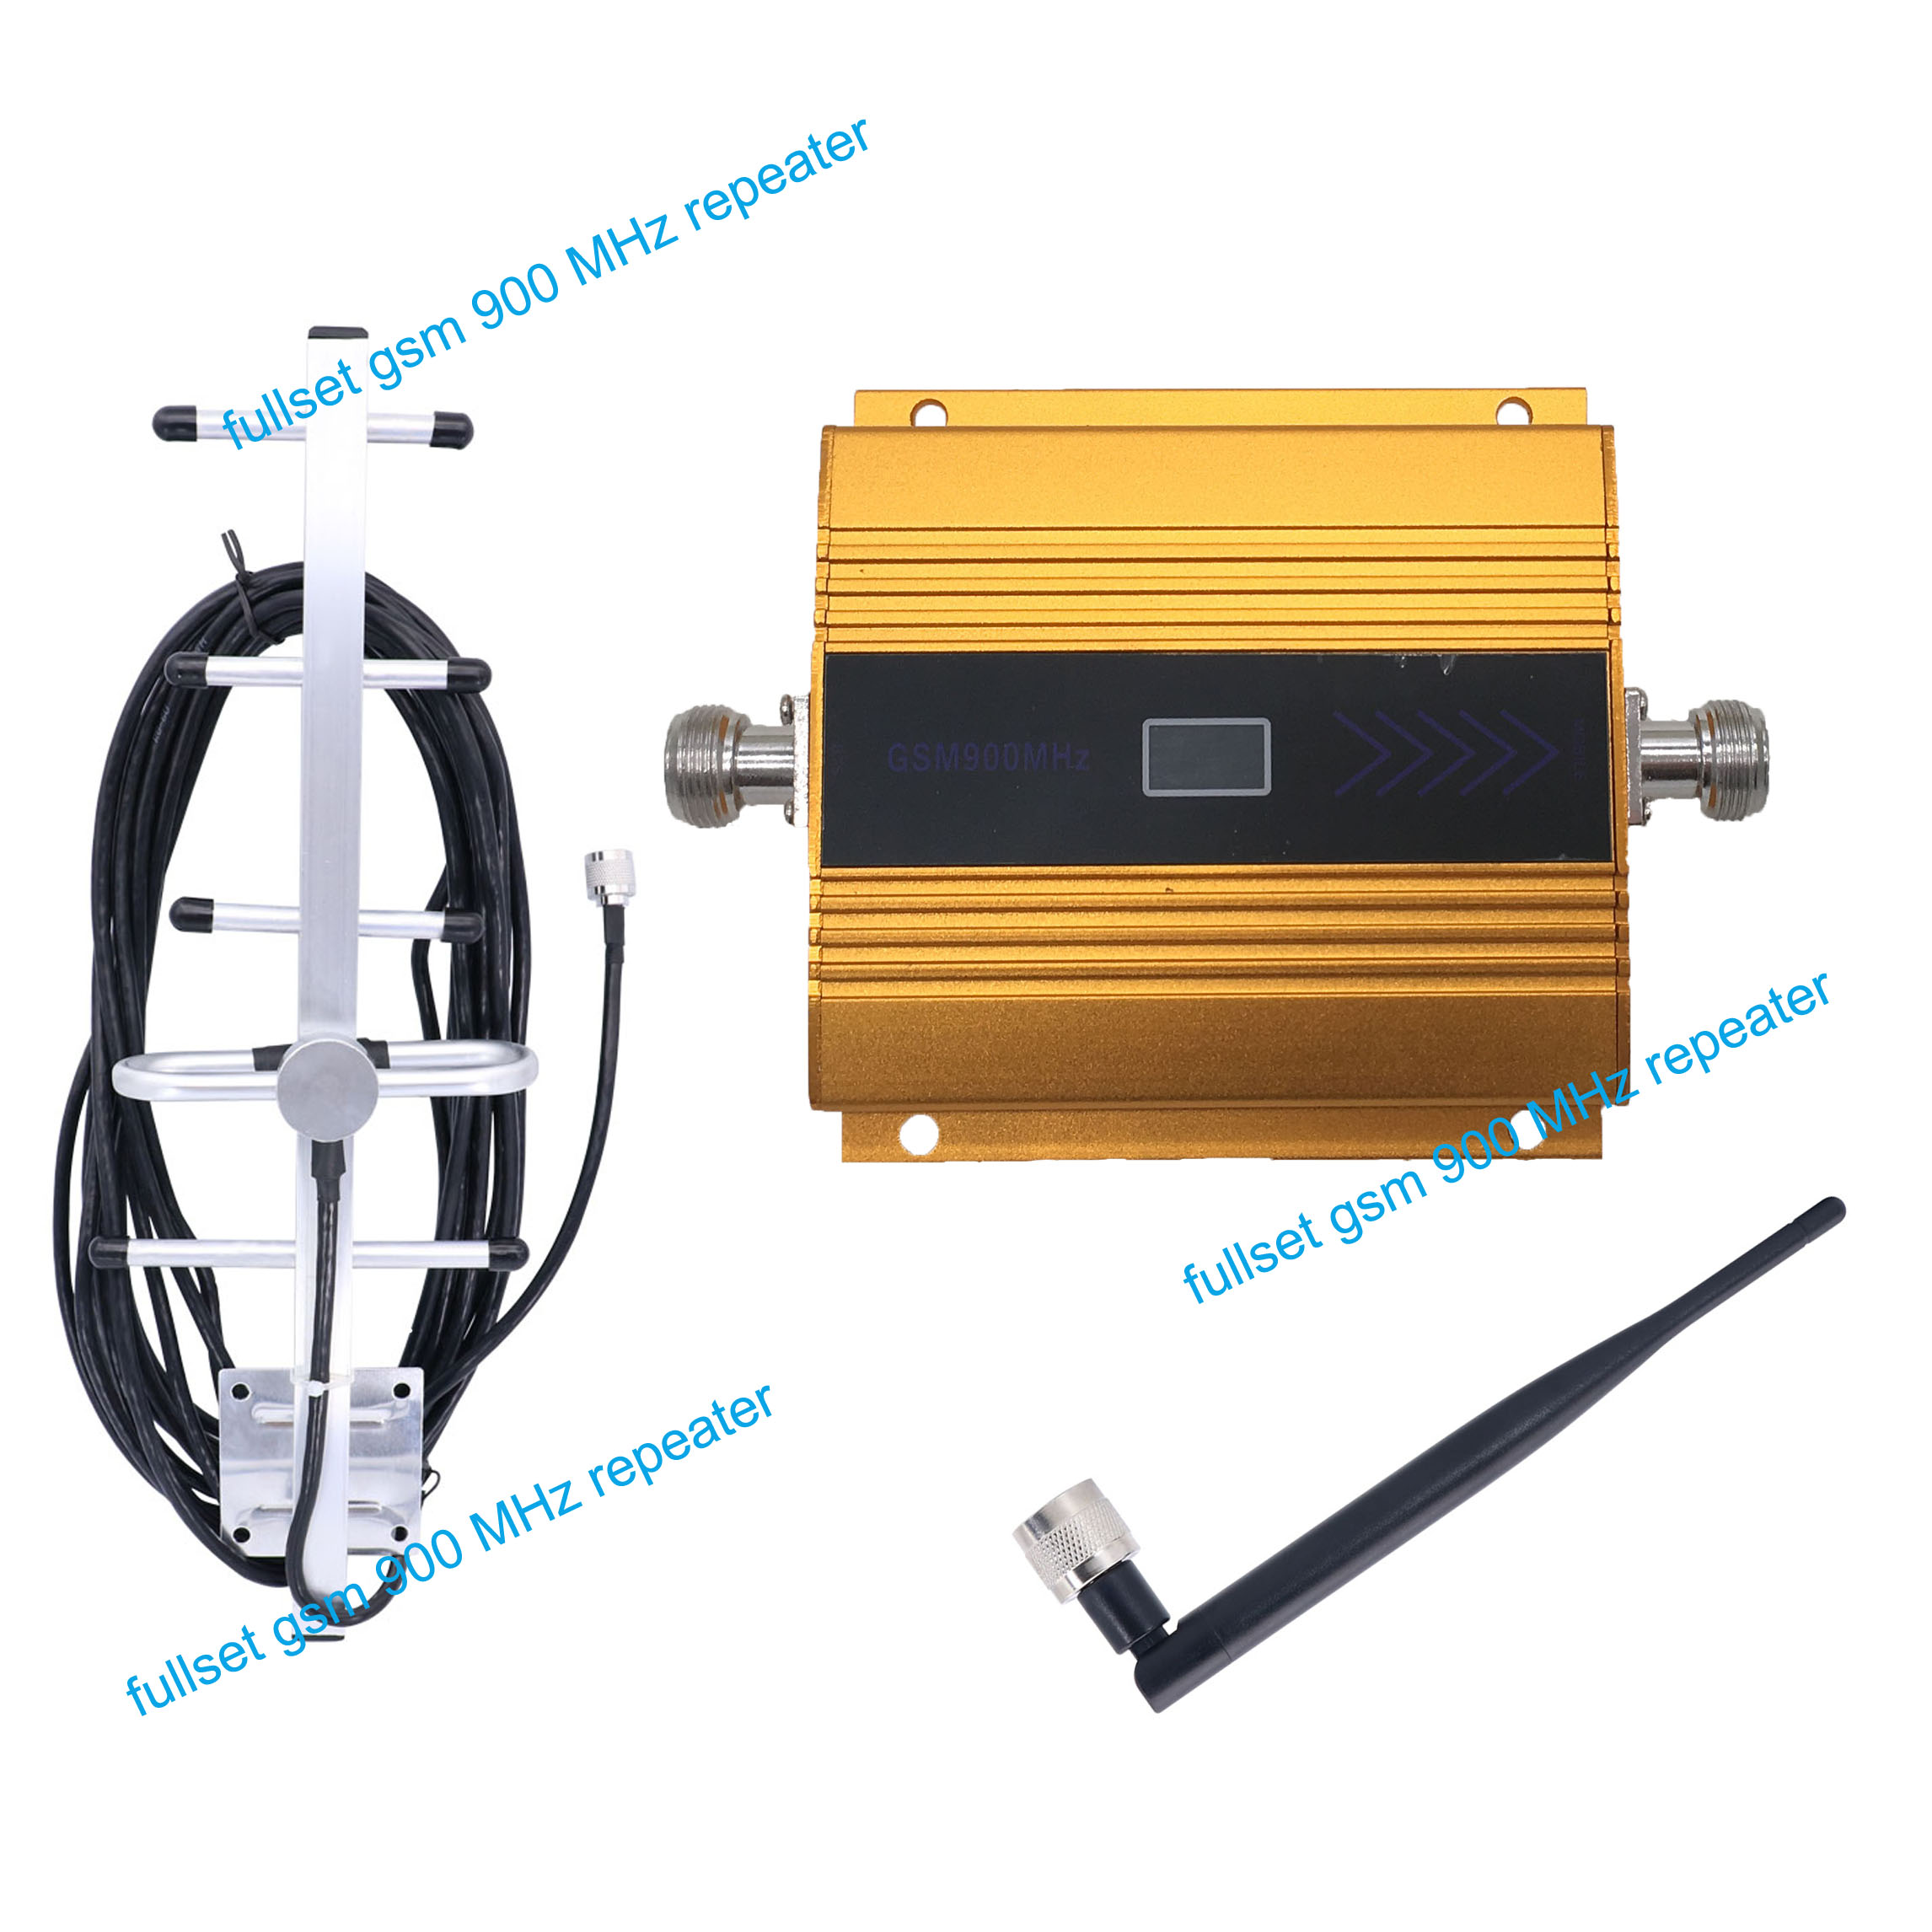 GSM 900MHz LCD signal repeater mini GSM900MHZ mobile signal booster GSM 900 cell phone amplifier with indoor outdoor antenna grille